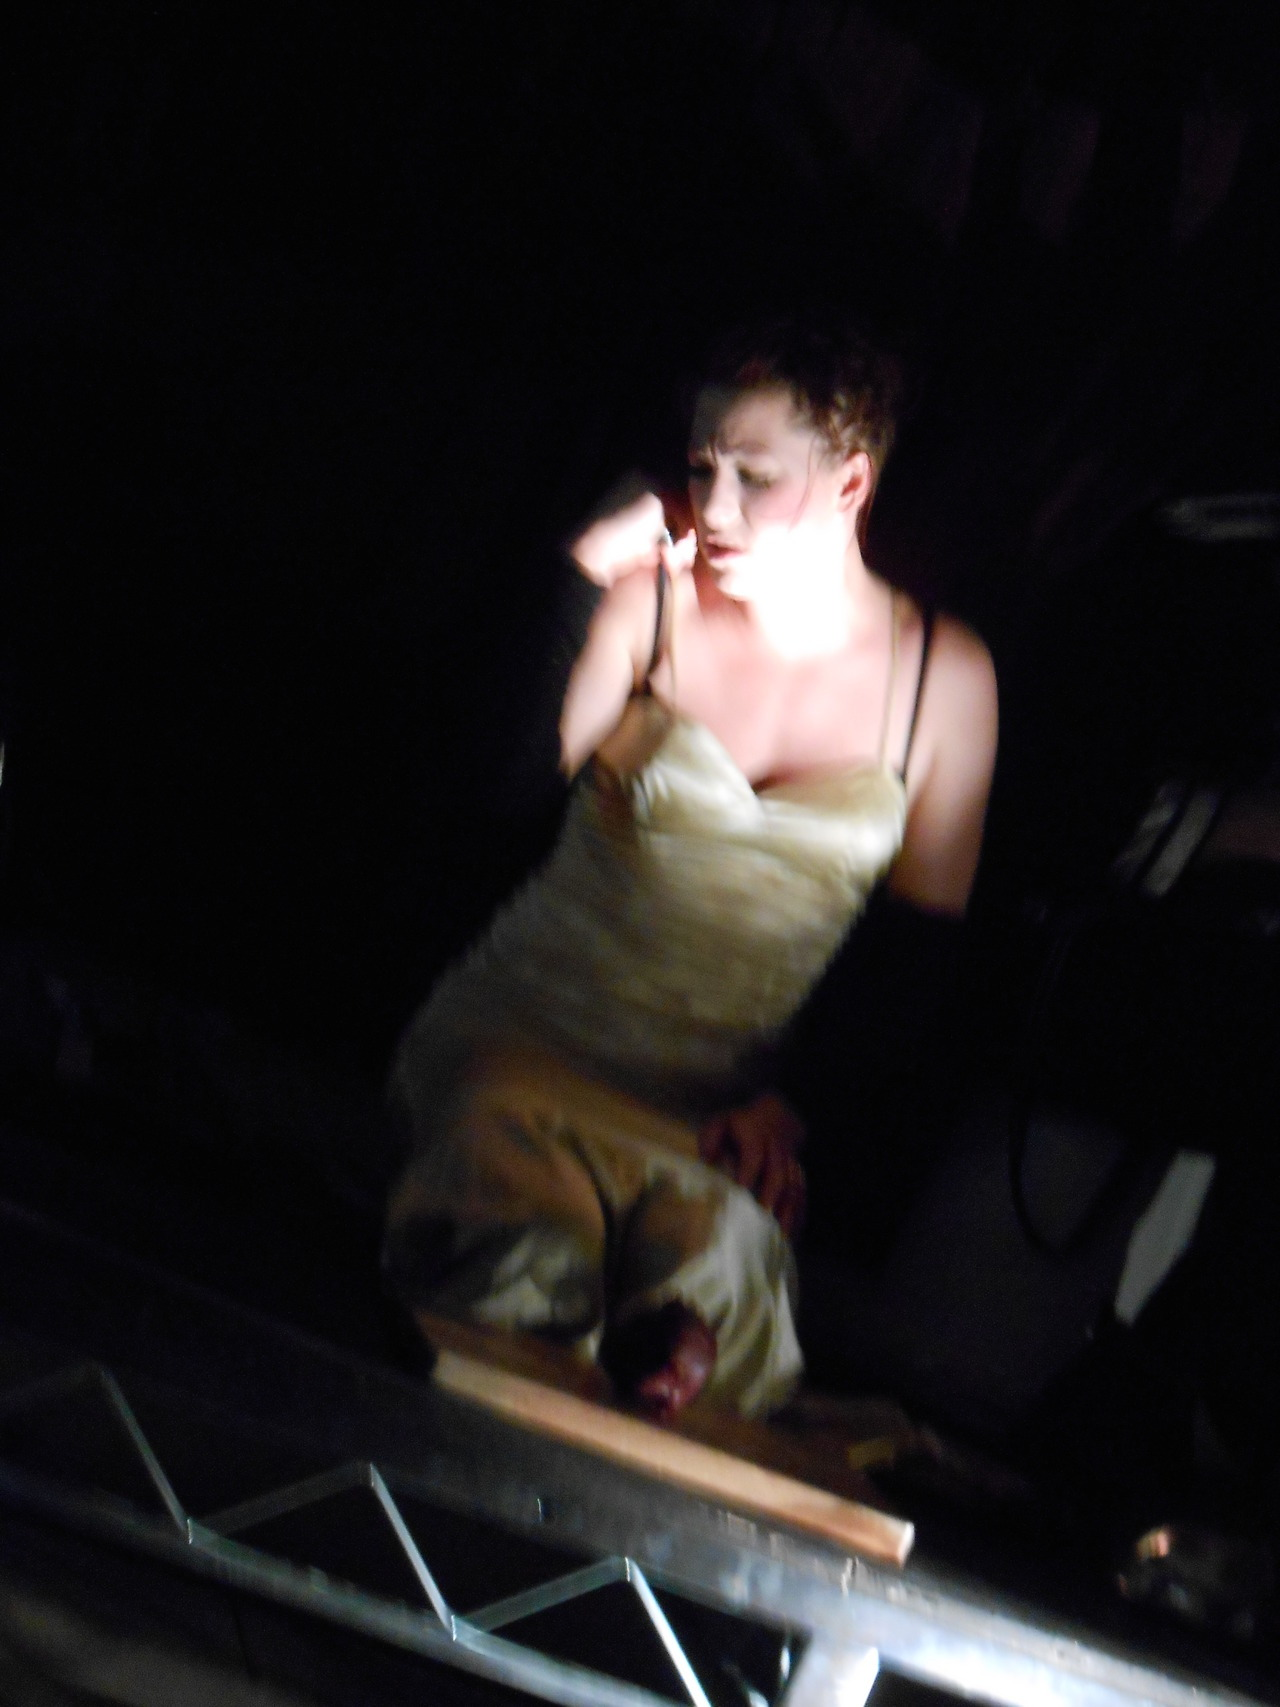 Amanda Palmer Live at her Kickstarter VIP Art Show and Acoustic Set at Pop tART Gallery… July 19th, 2012